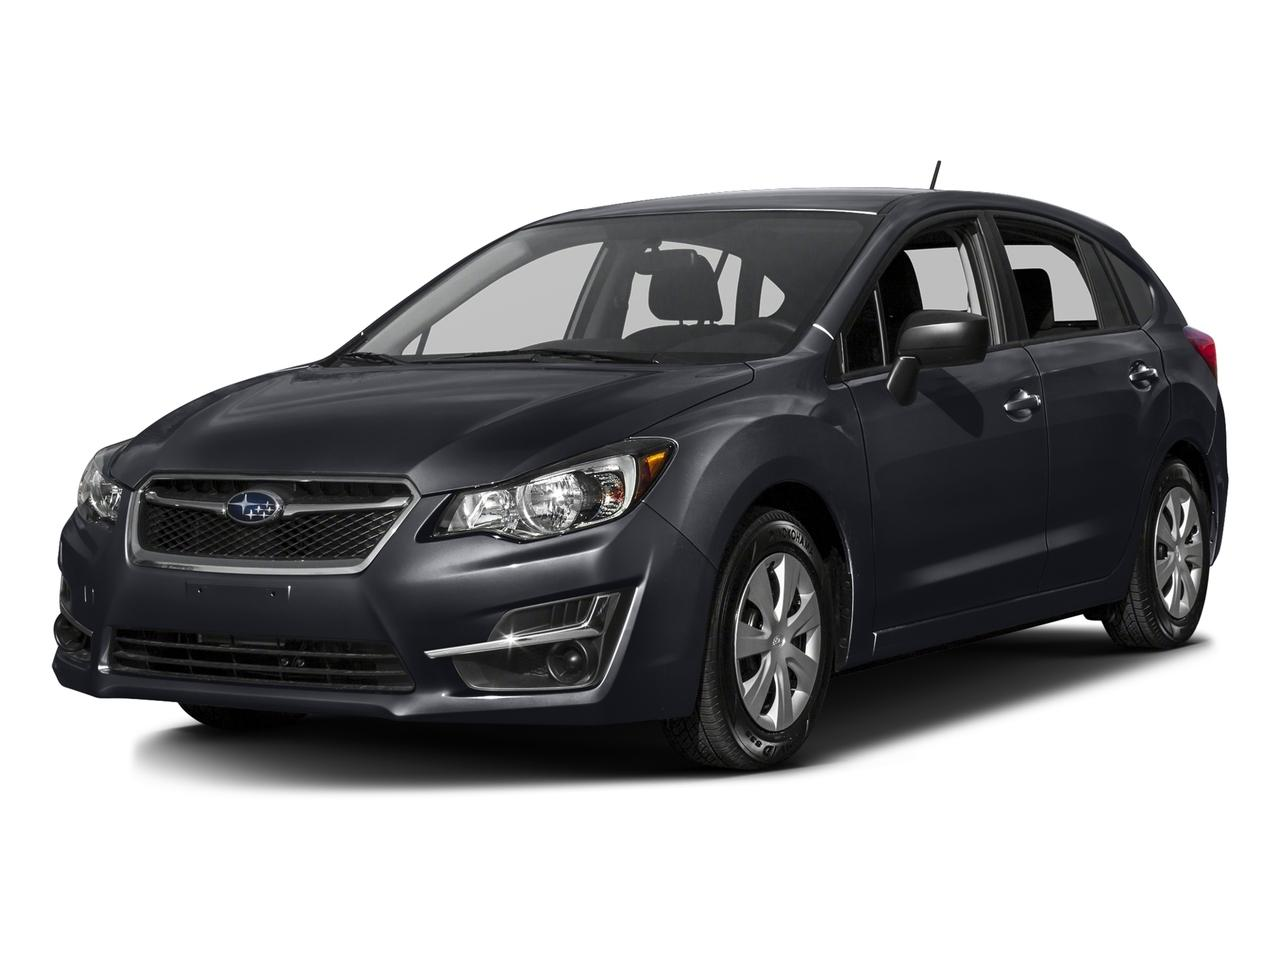 2016 Subaru Impreza Wagon Vehicle Photo in Hamden, CT 06517